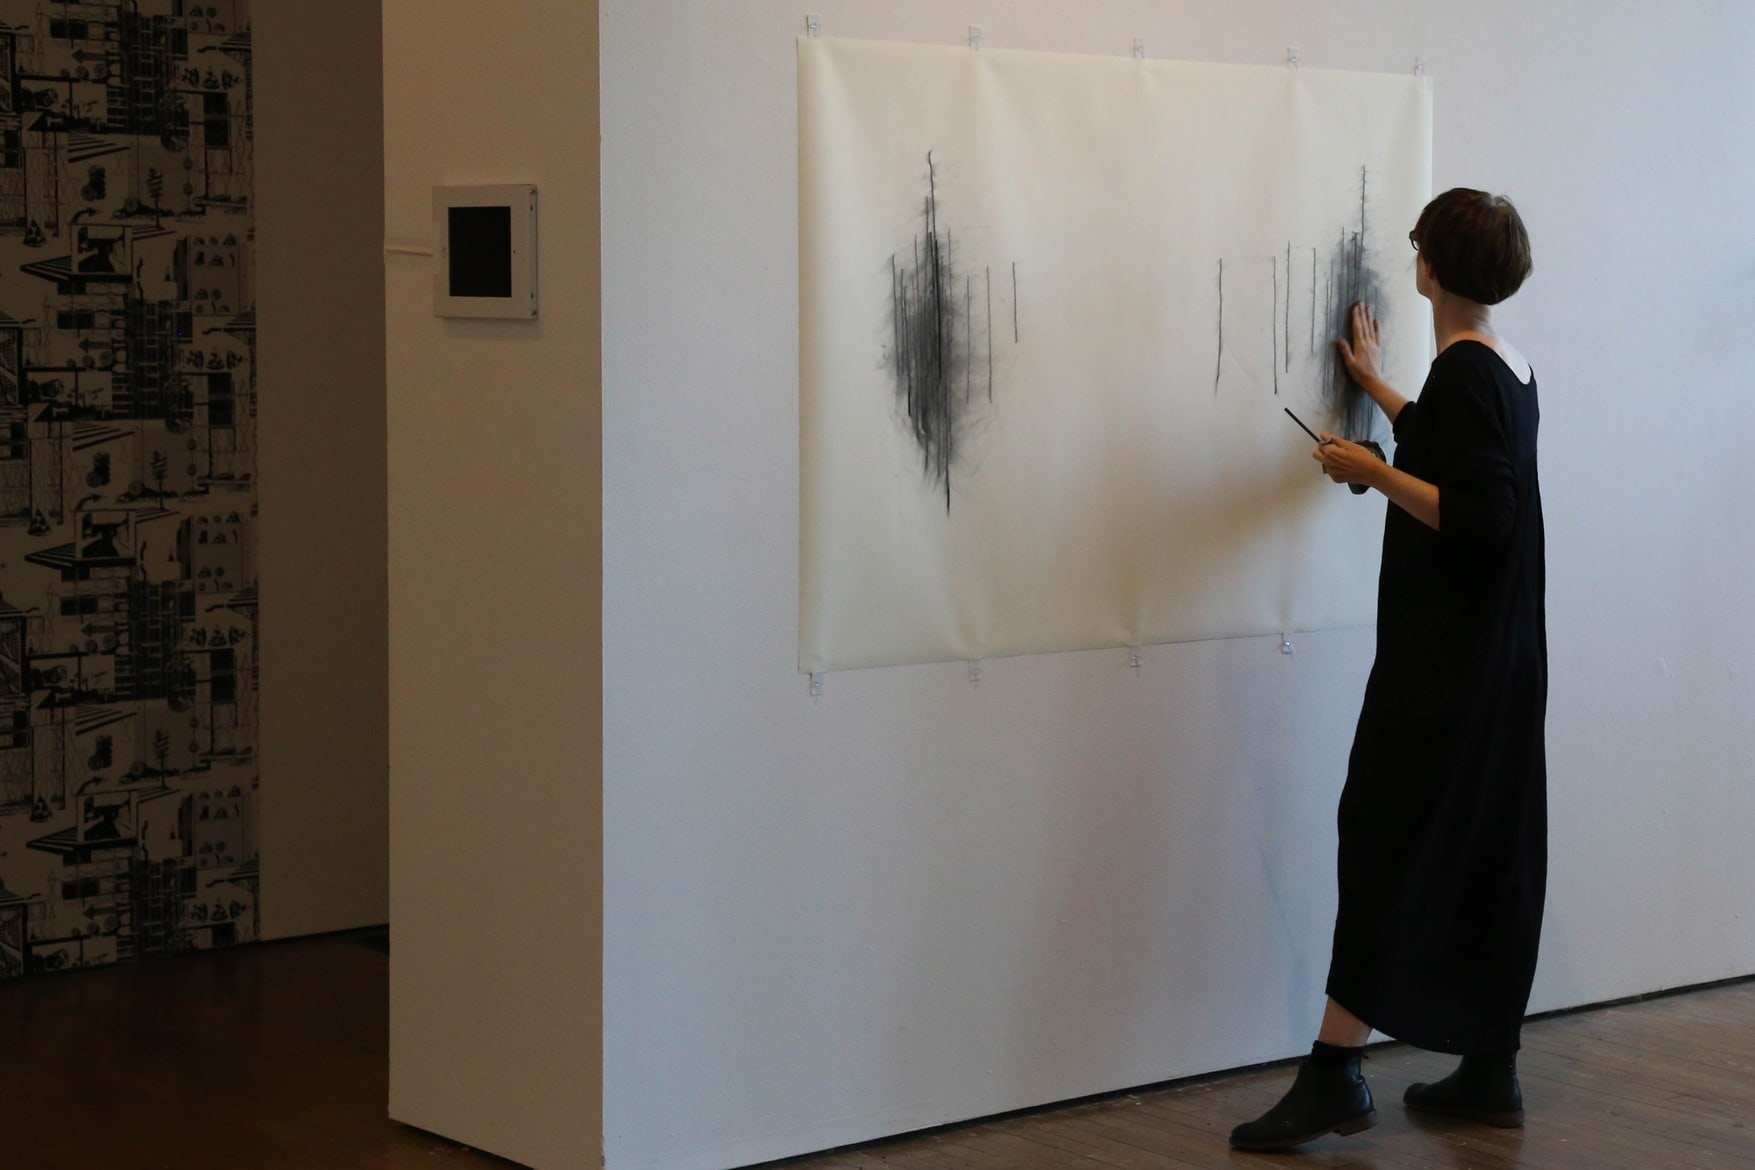 Sara Morawetz, 'Acts of Inexactitude', 2018, pencil on paper and single channel video work